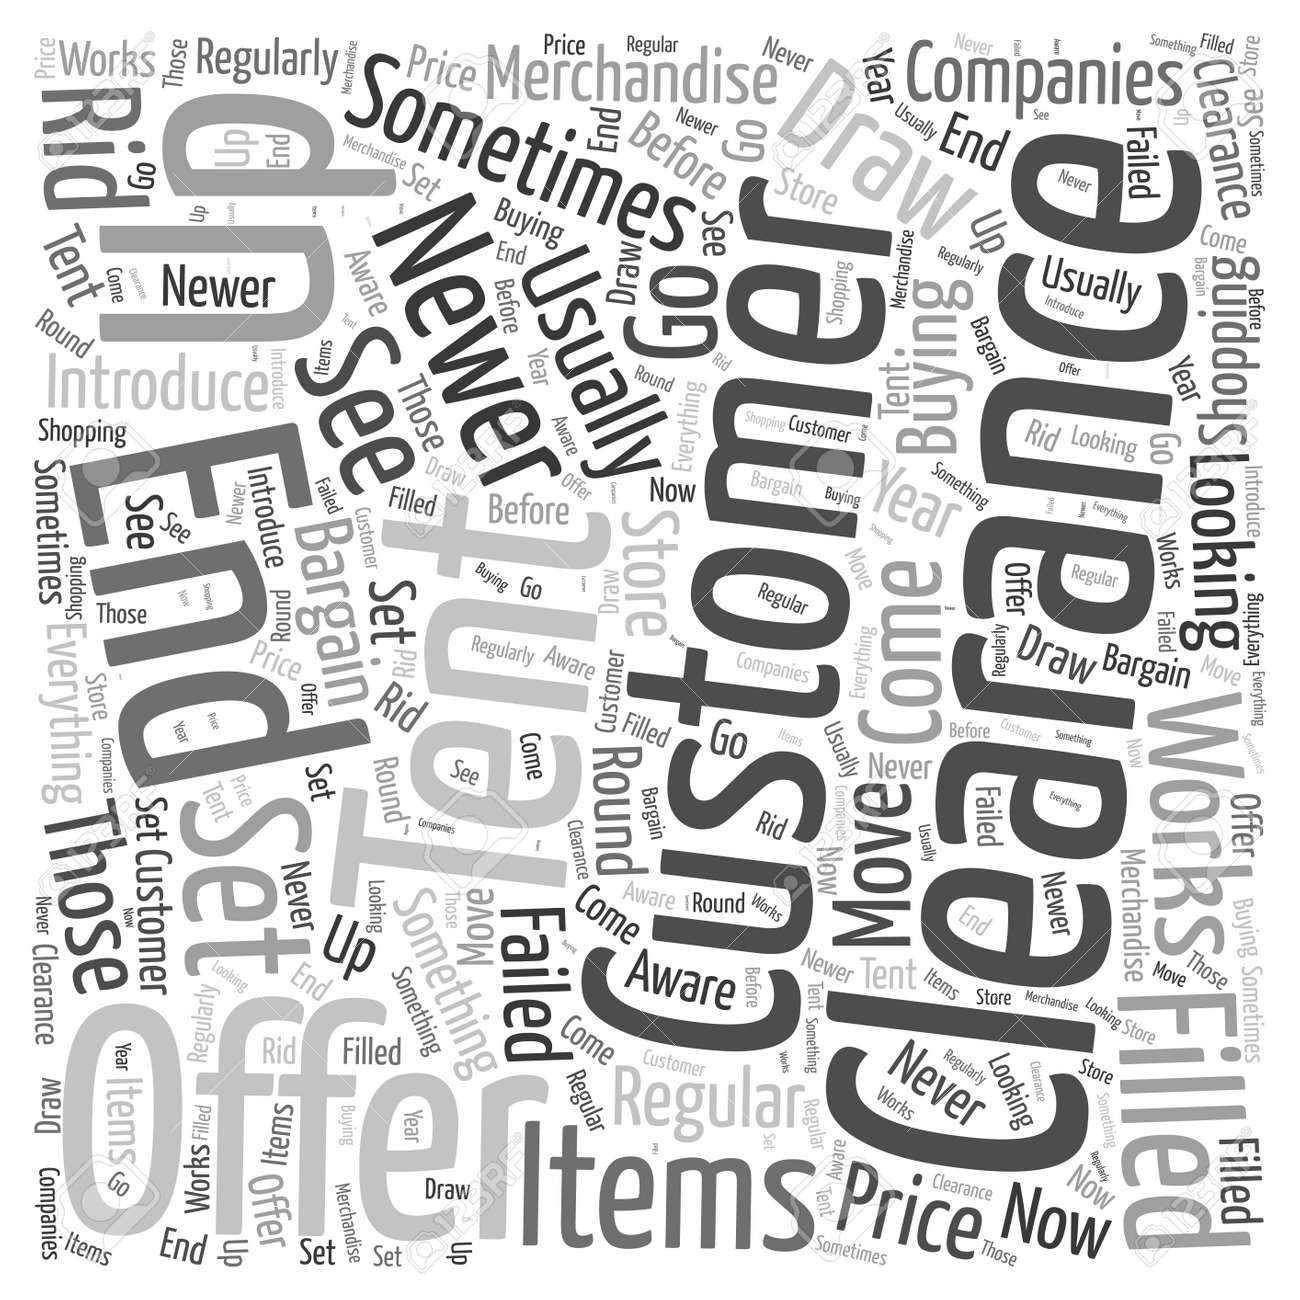 clearance tents Word Cloud Concept Stock Vector - 74204015  sc 1 st  123RF.com & Clearance Tents Word Cloud Concept Royalty Free Cliparts Vectors ...